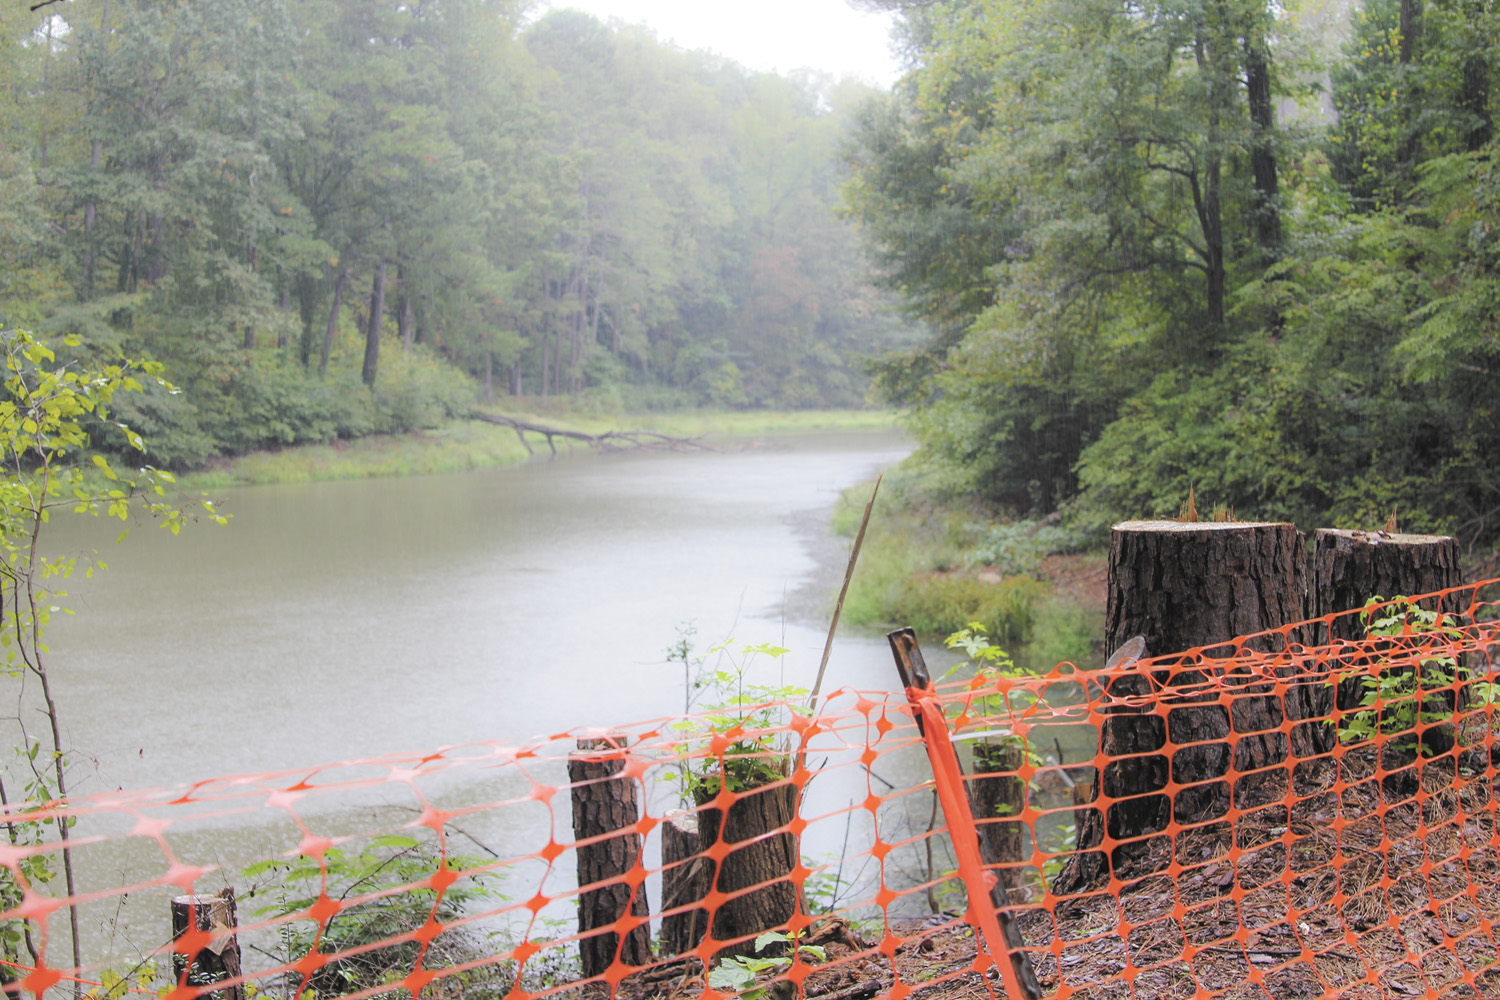 Maintaining dams can get pricey